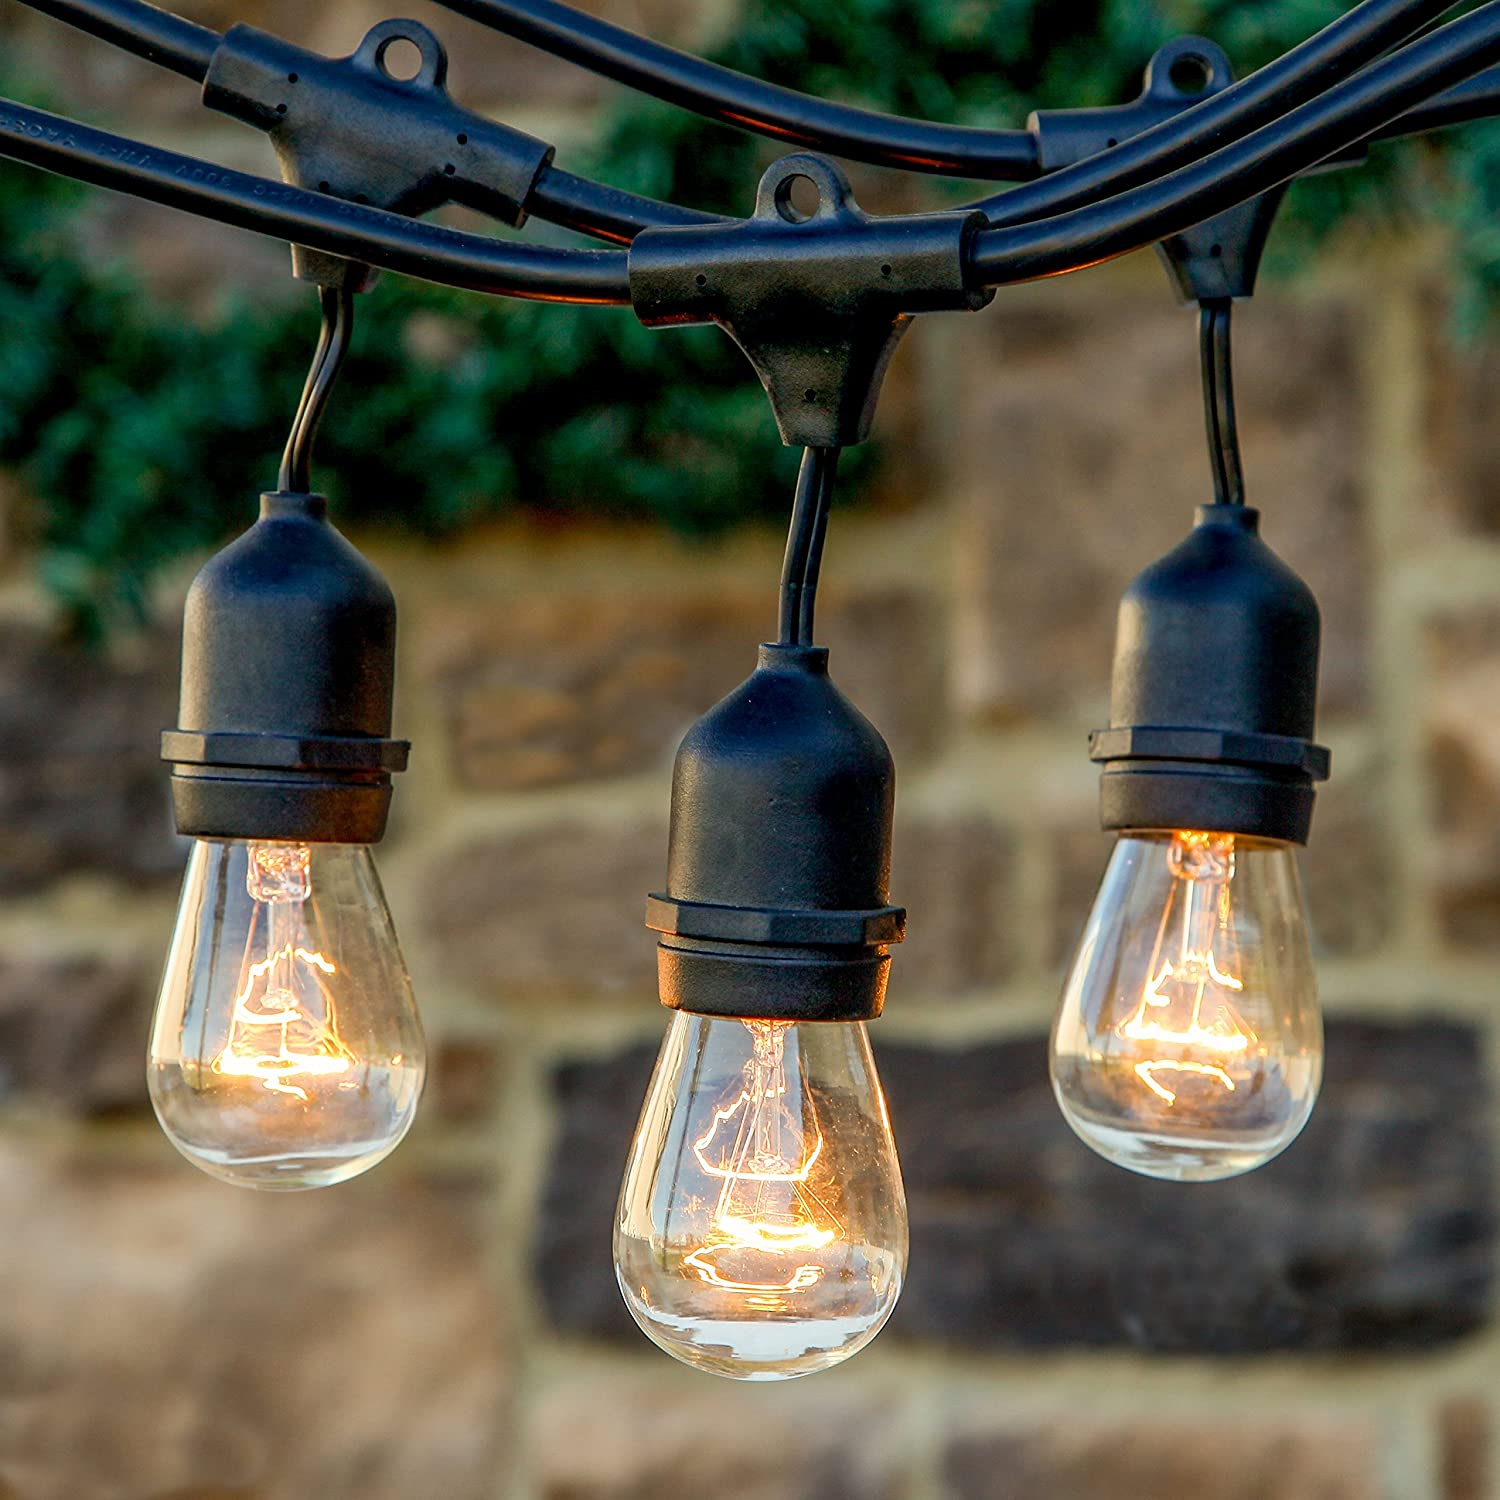 Outdoor Commercial String Lights with 11S14 Bulbs